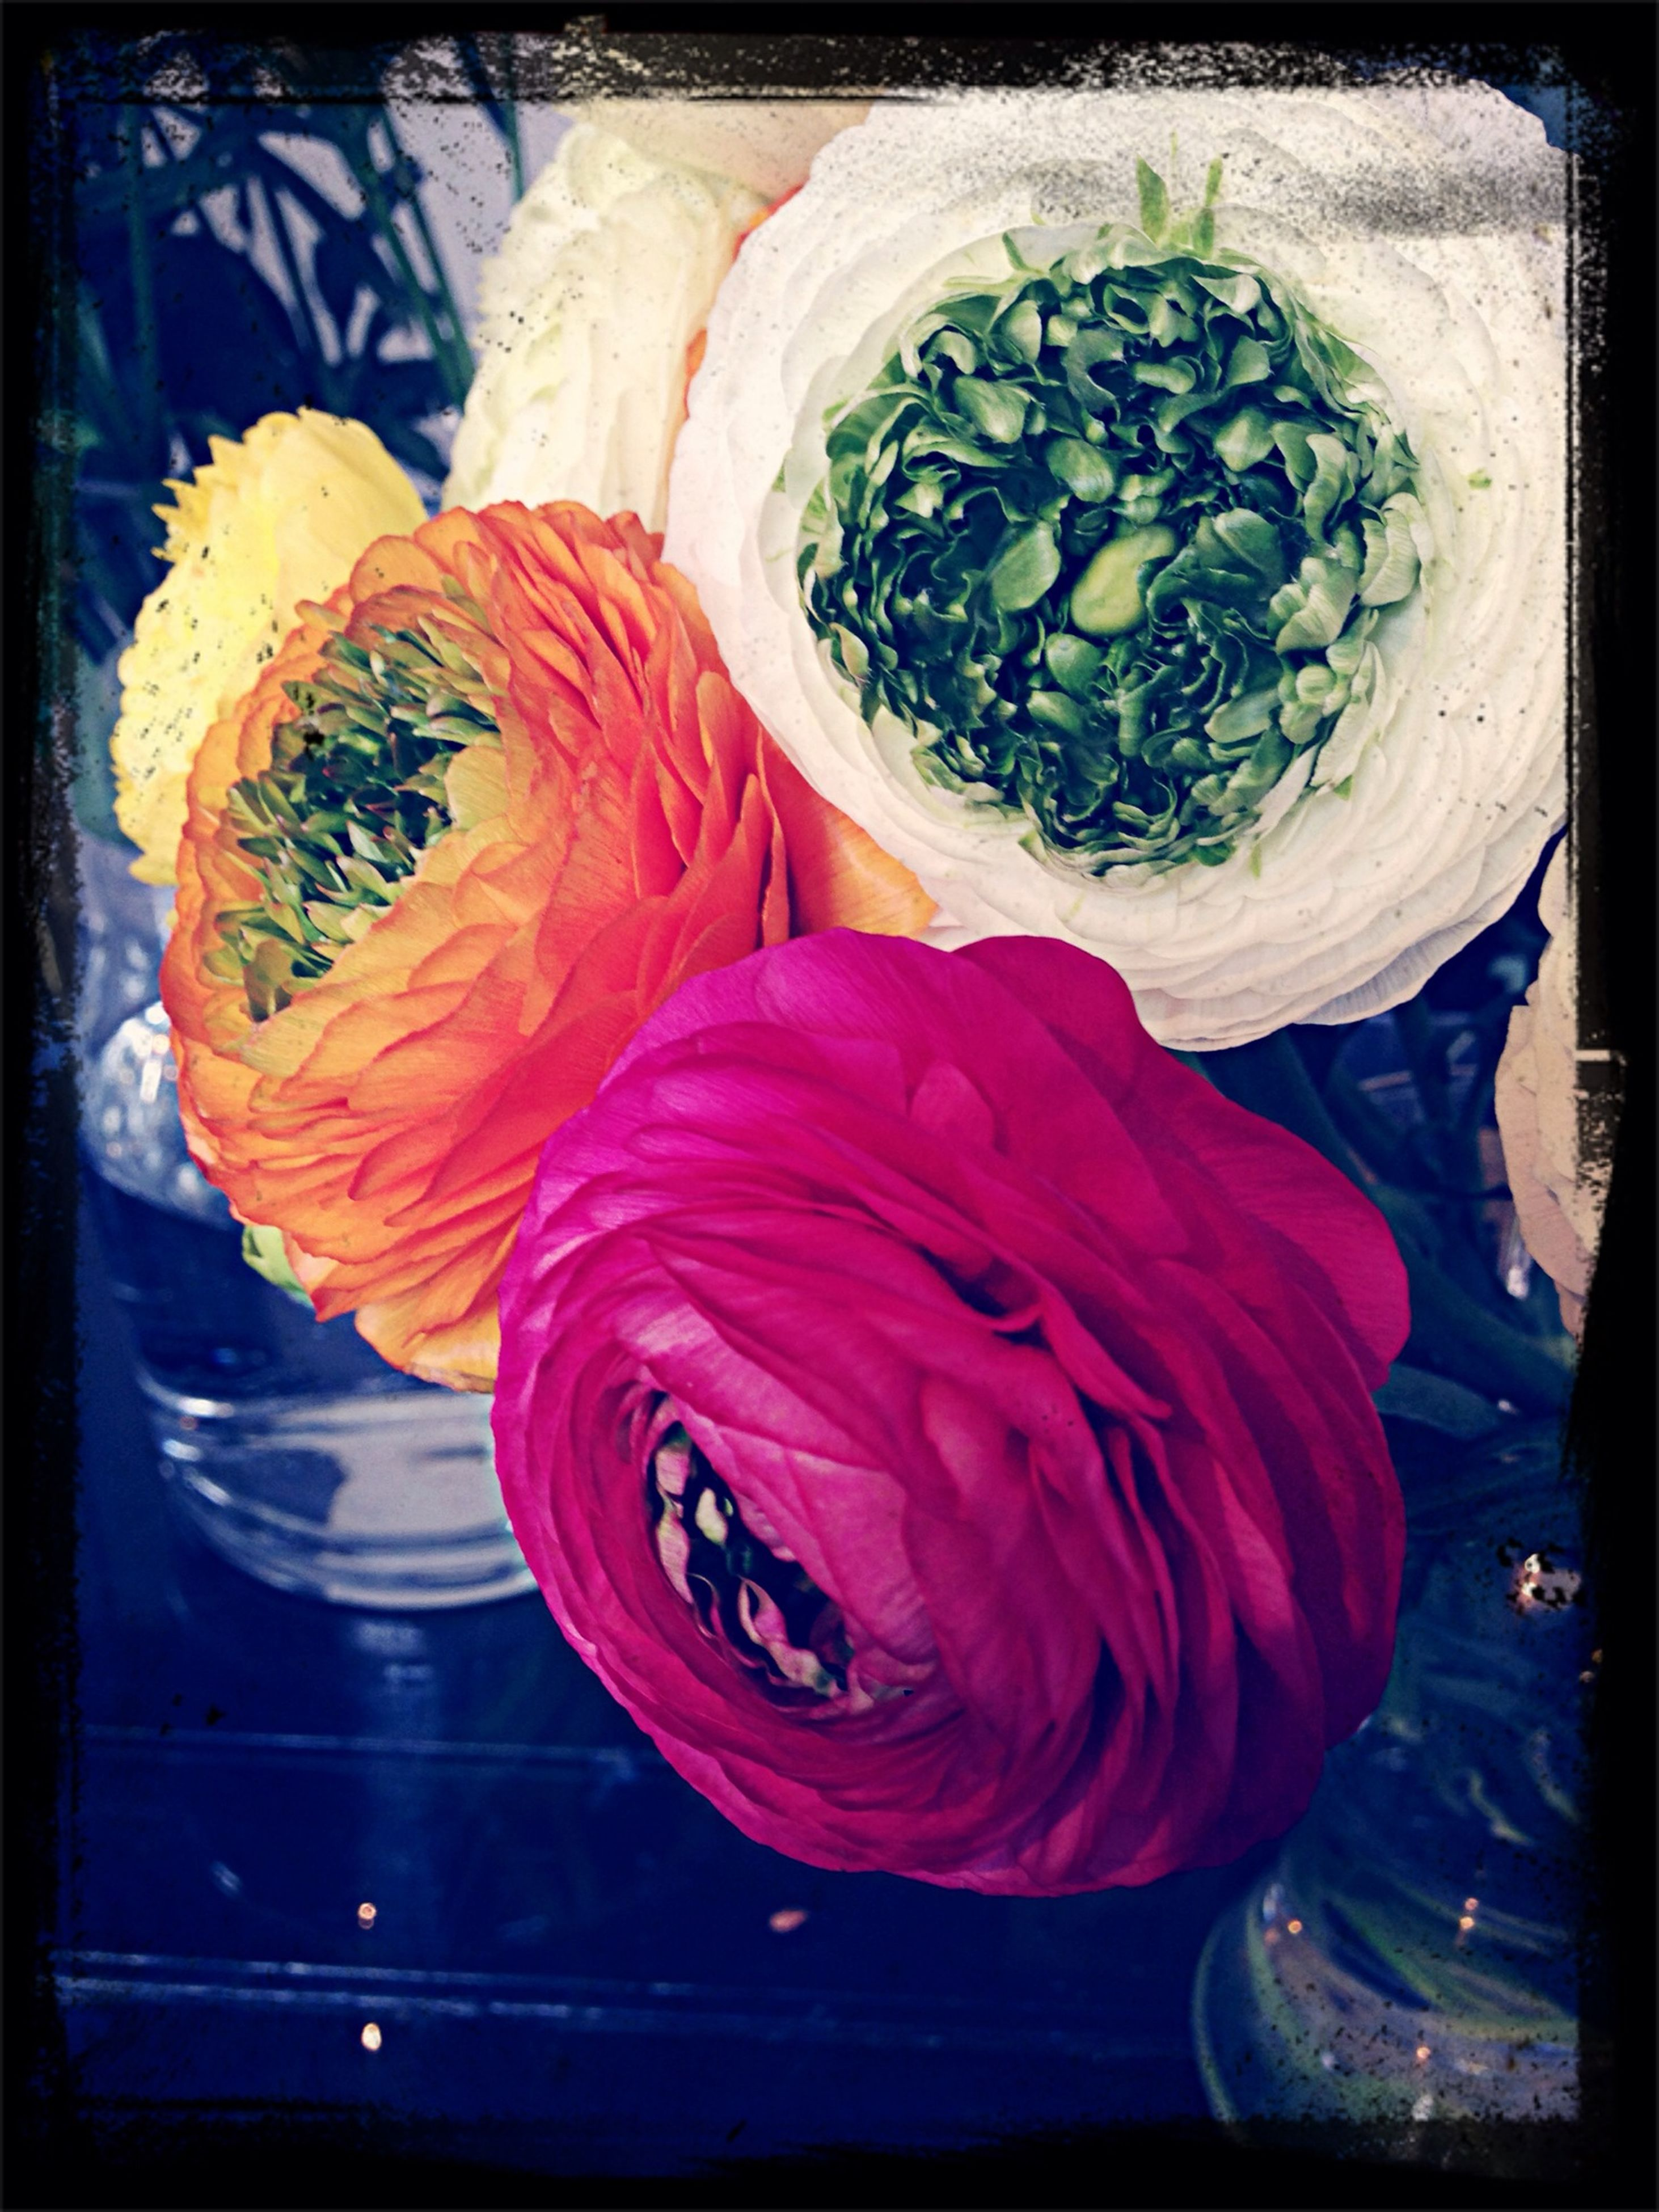 transfer print, indoors, freshness, auto post production filter, still life, high angle view, food and drink, table, close-up, multi colored, food, flower, red, no people, healthy eating, directly above, decoration, variation, vegetable, bowl